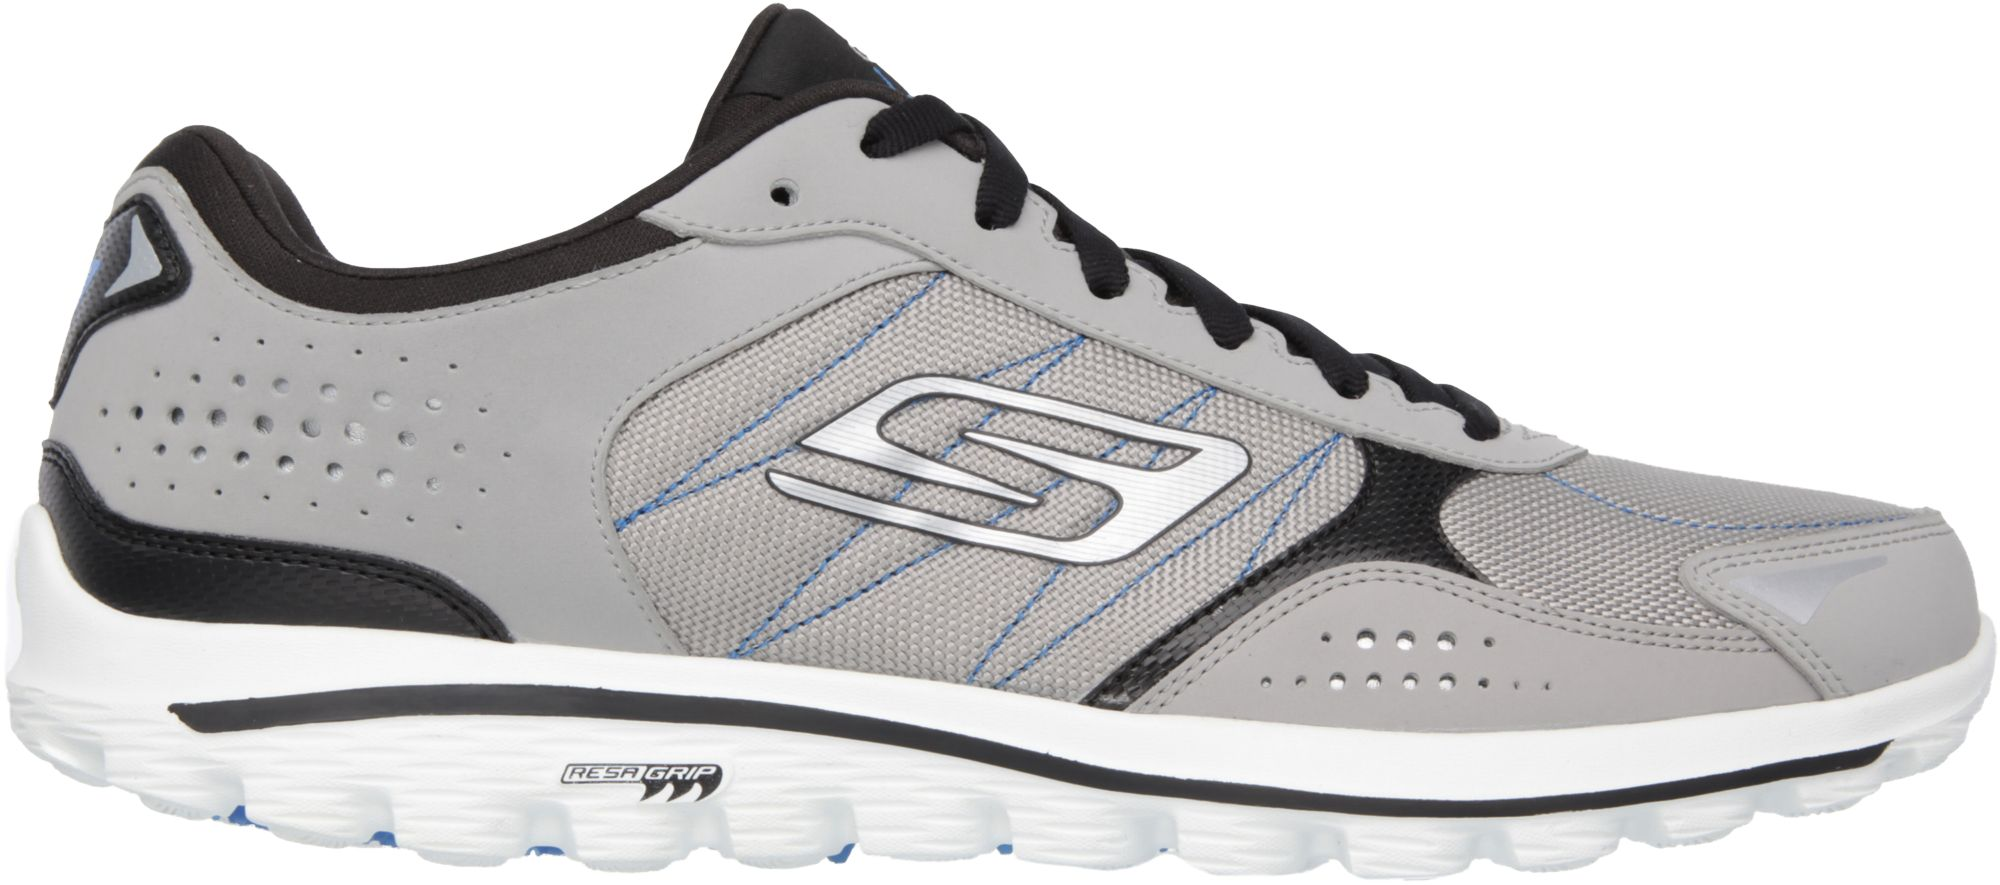 SKECHERS GOwalk 2 – Lynx Ballistic Golf Shoes